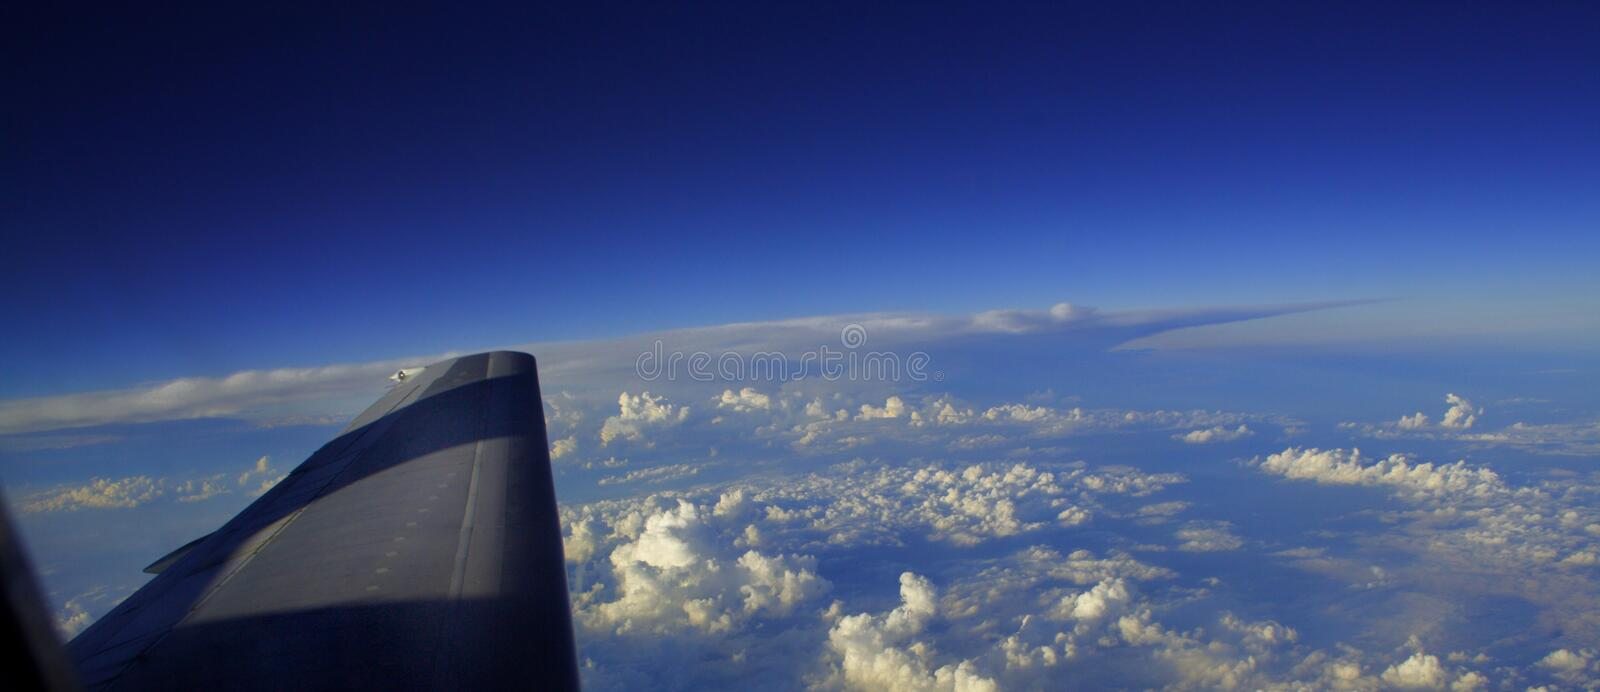 SKY, SEA AND CLOUDS royalty free stock photography